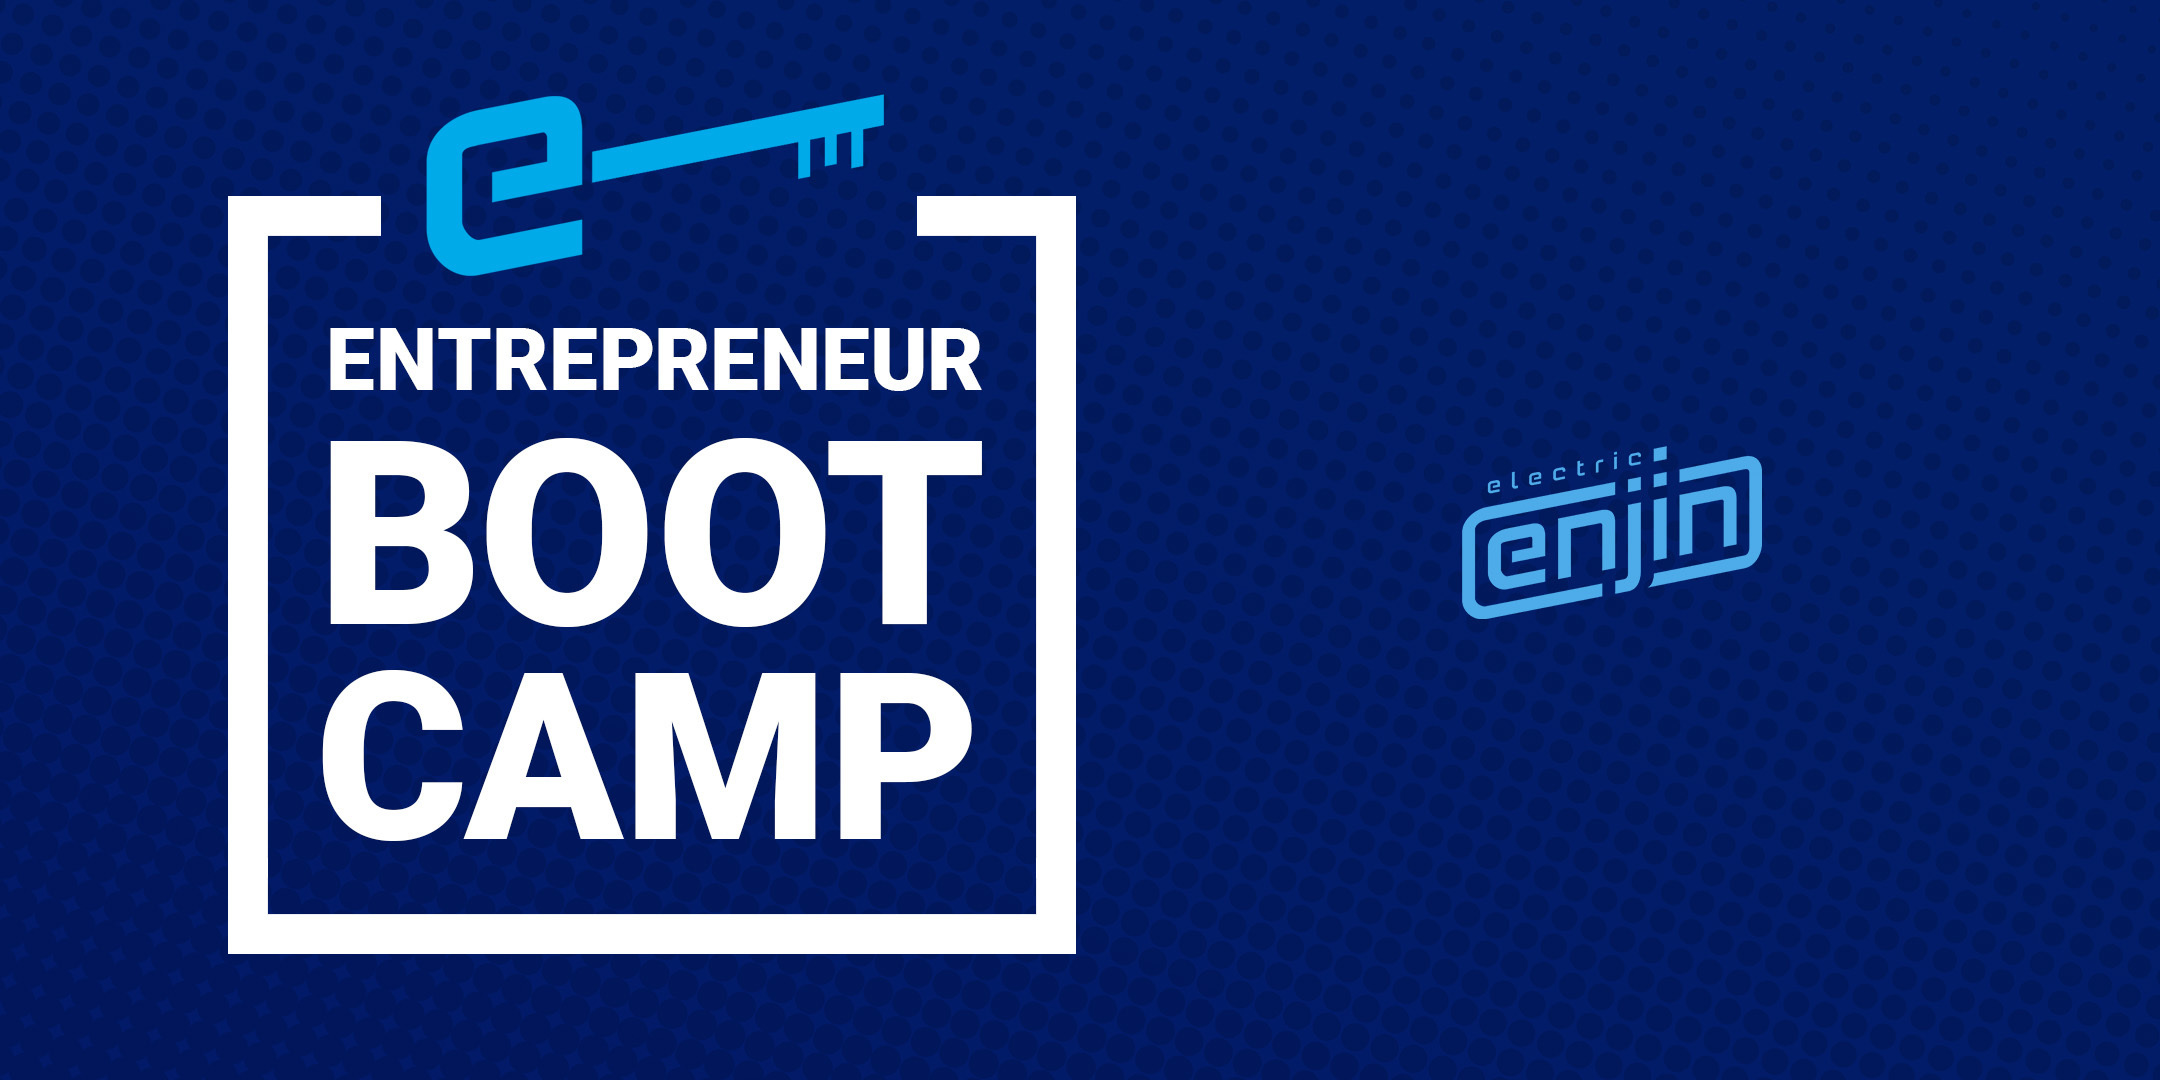 Join Us Online for Our Entrepreneurship Boot Camp